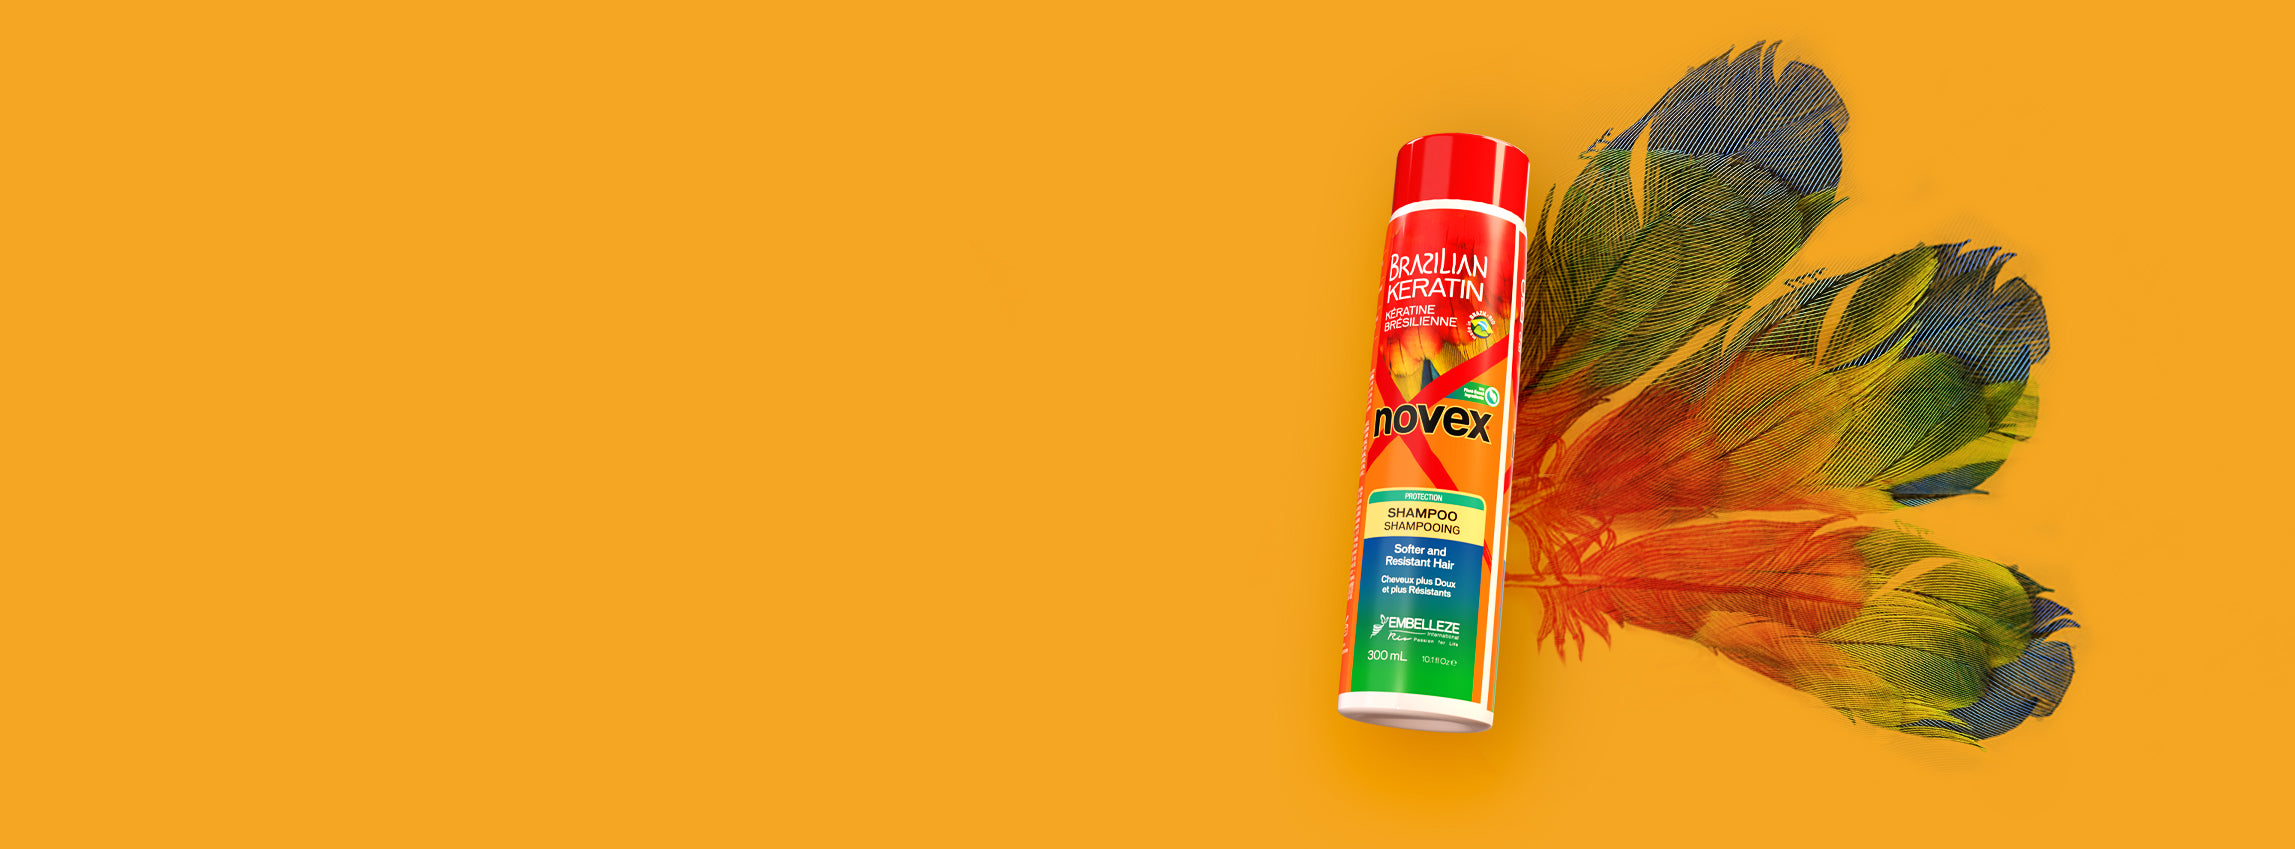 Novex Hair Care